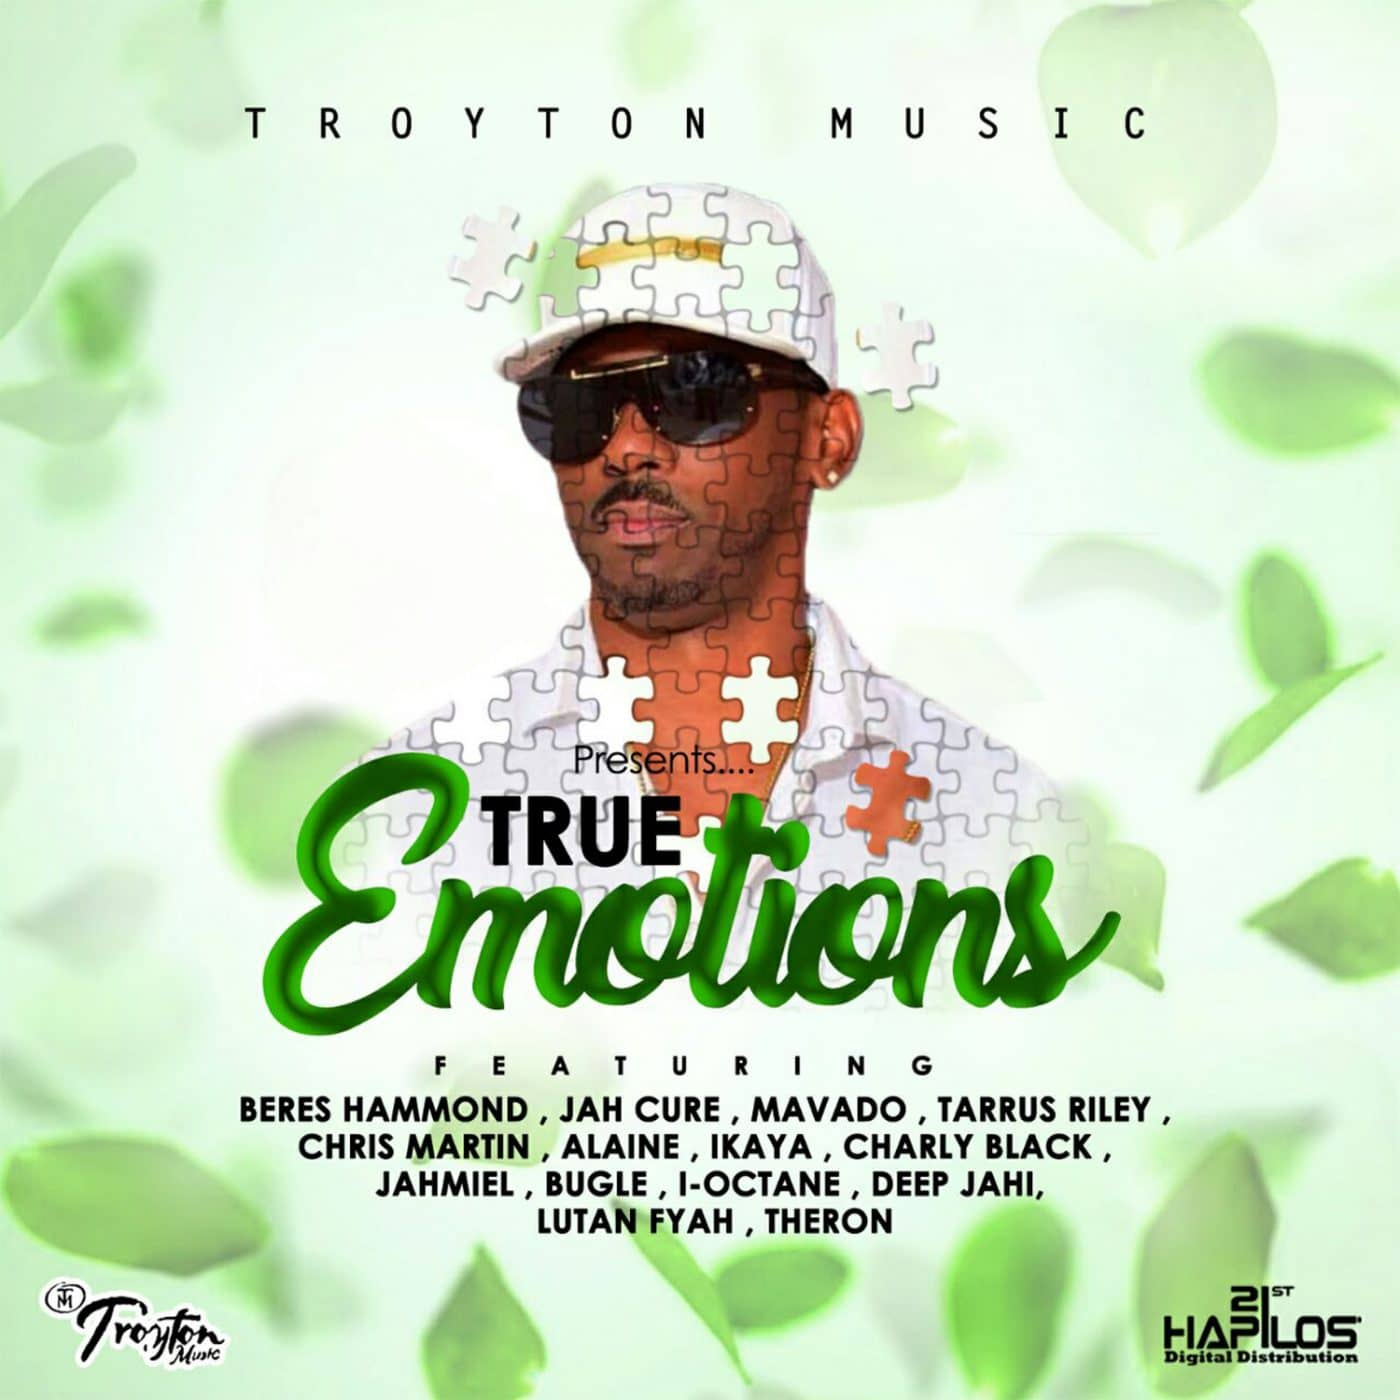 True Emotions Riddim - Troyton Music - 21st Hapilos